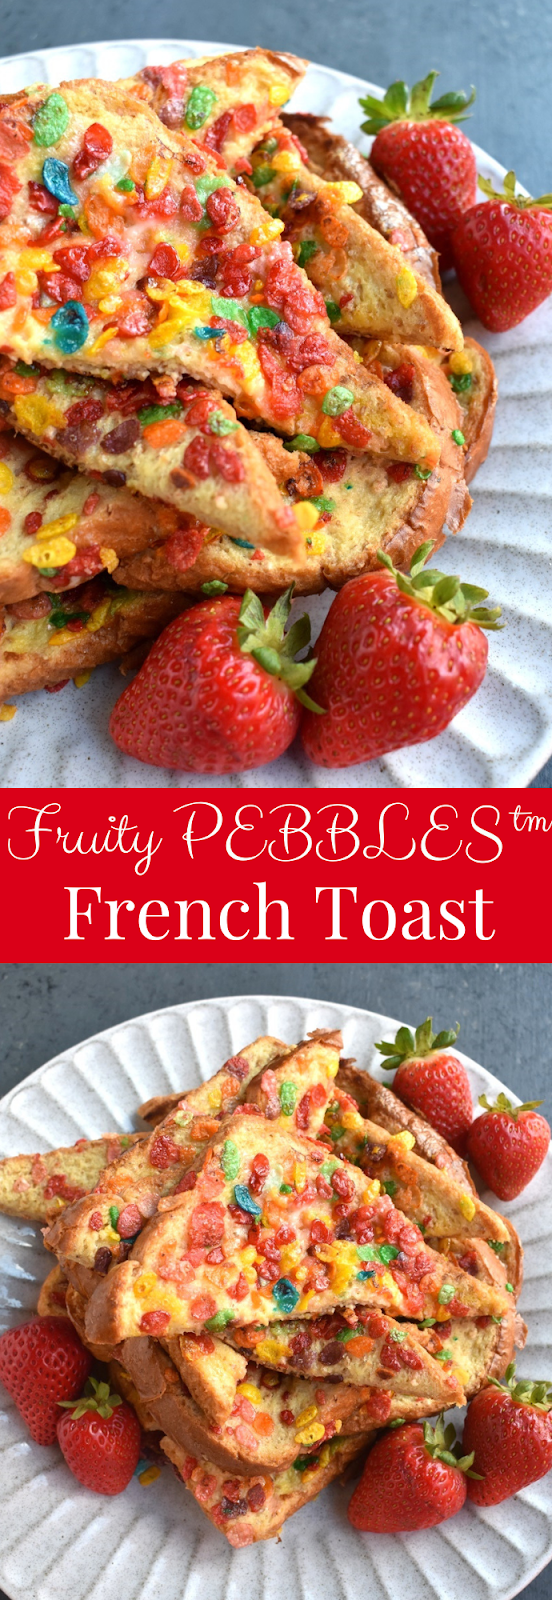 Fruity PEBBLES French Toast recipe